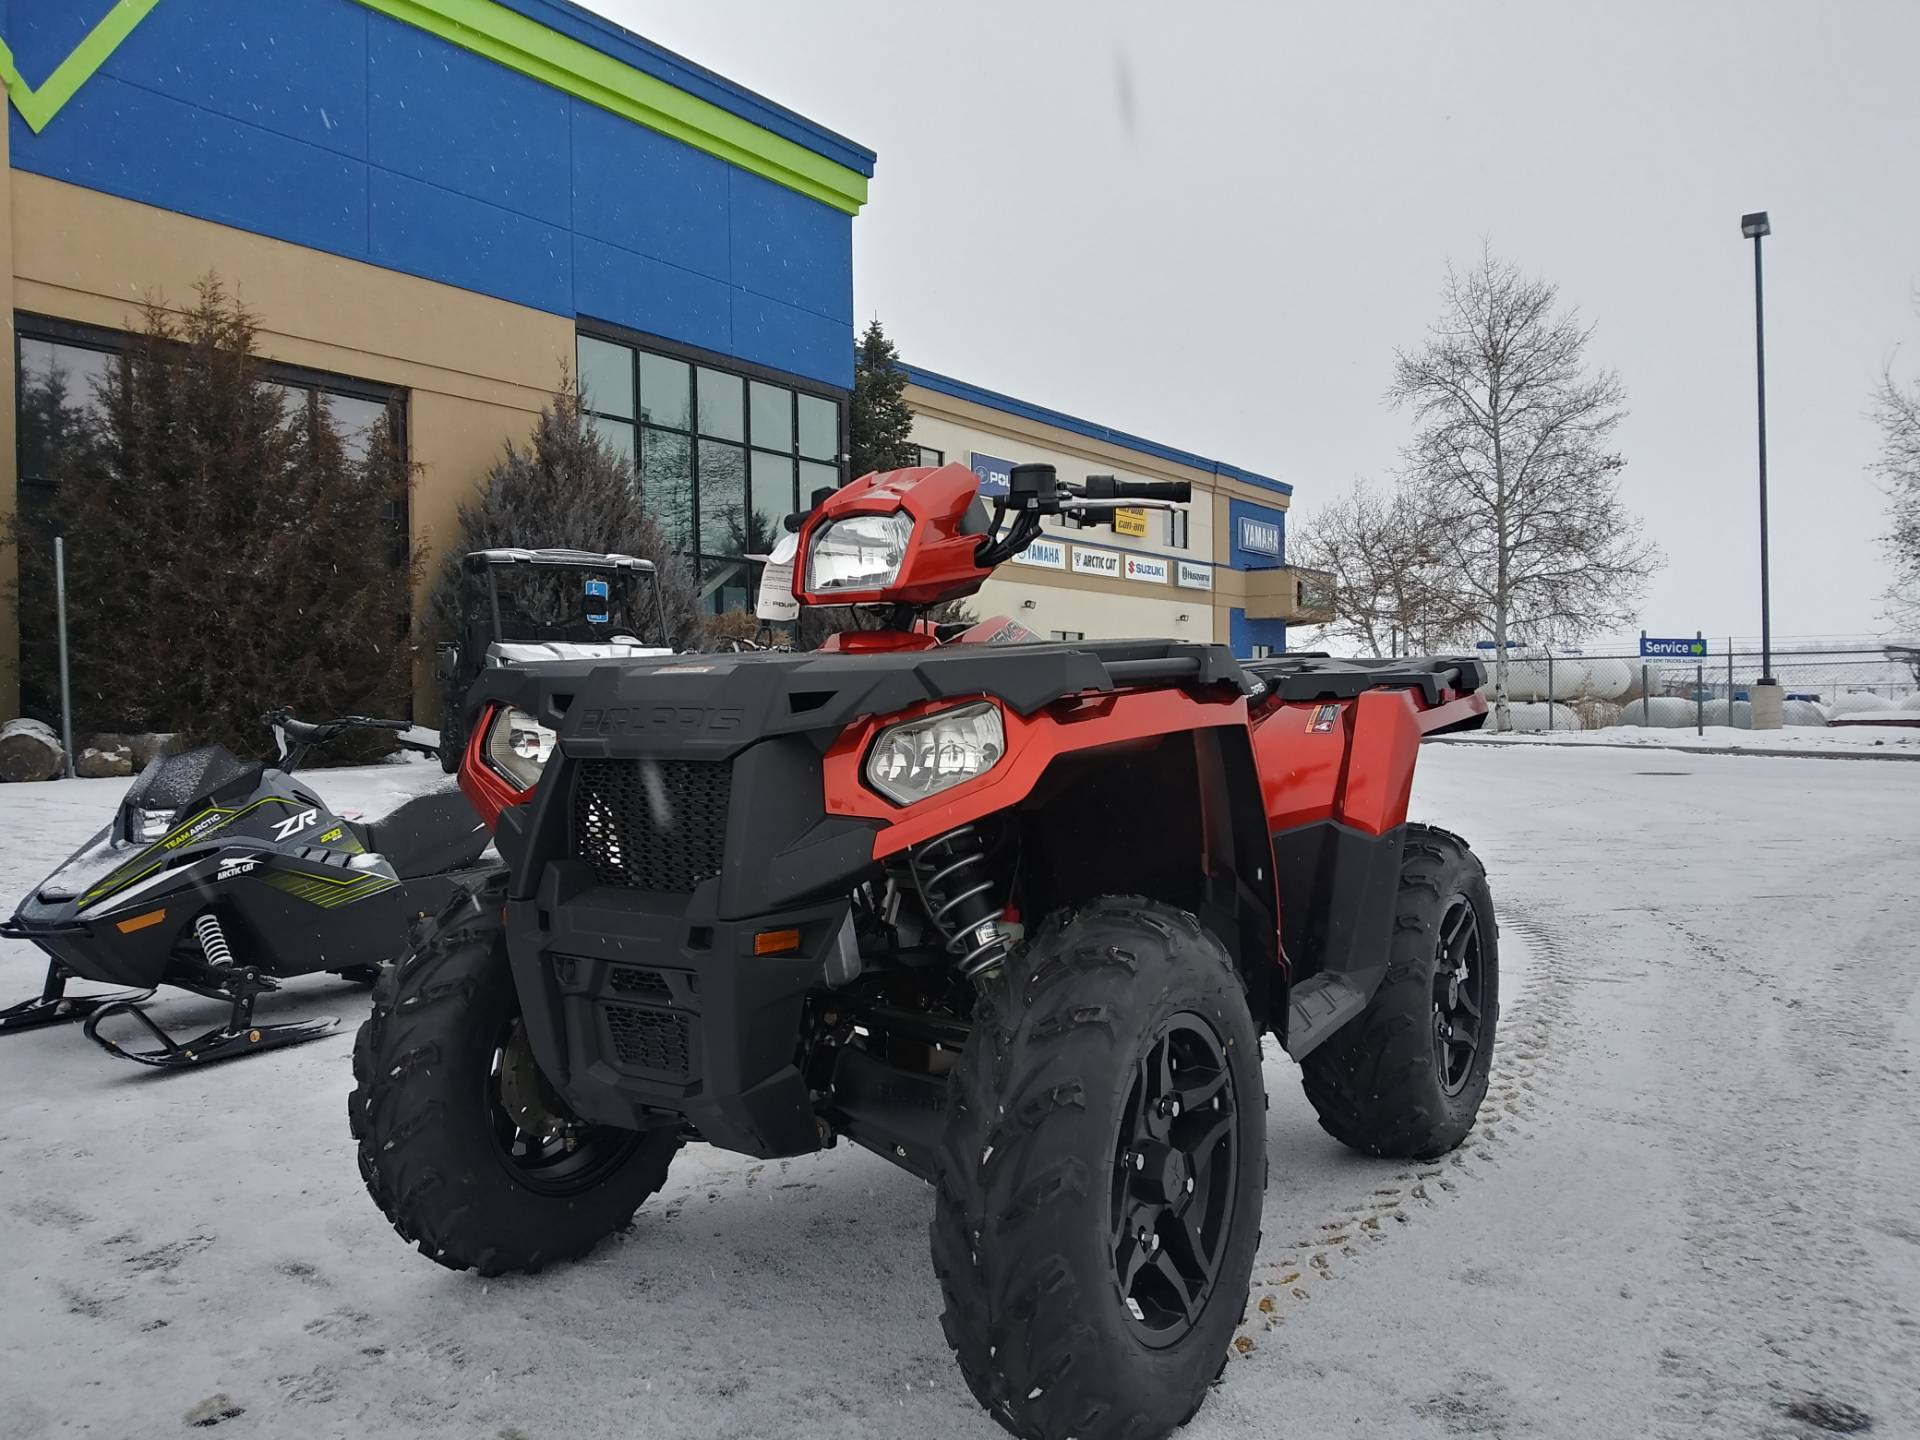 2020 Polaris Sportsman 570 Premium in Rexburg, Idaho - Photo 3